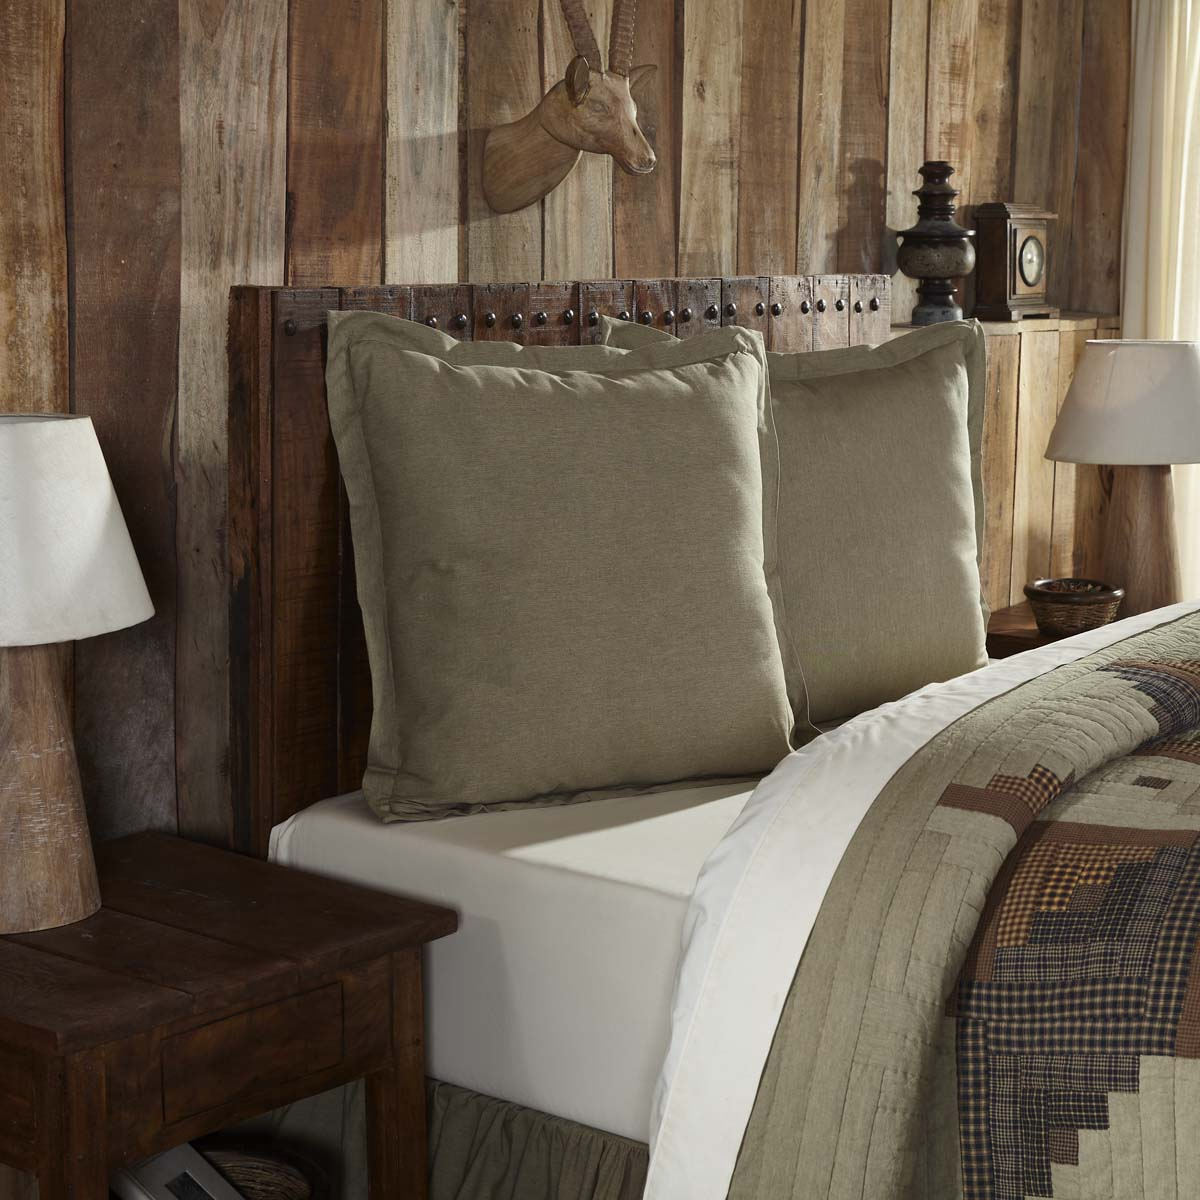 Khaki Green Tan Rustic & Lodge Bedding Novak Cotton Chambray Solid Color Euro Sham